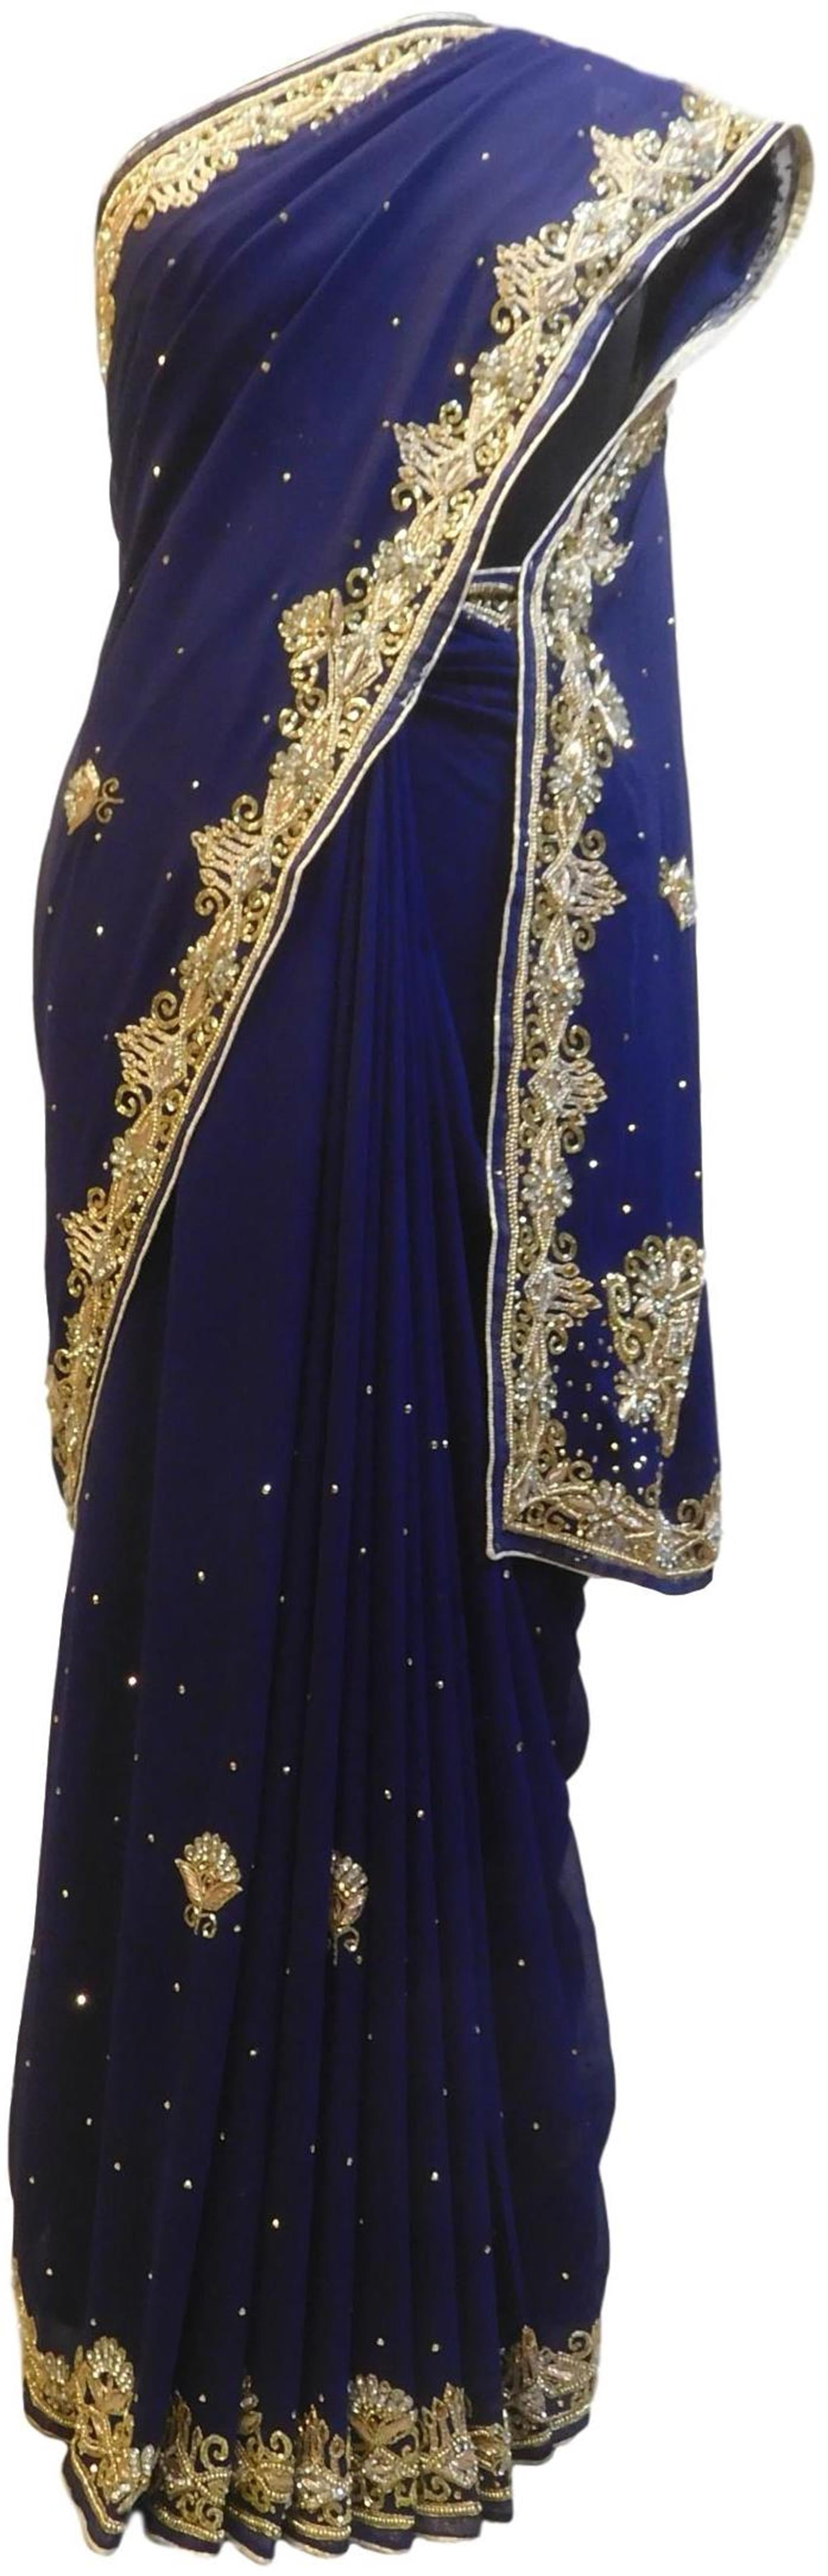 Blue Designer Wedding Partywear Georgette Hand Embroidery Zari Bullion Cutdana Stone Beads Work Kolkata Saree Sari E346